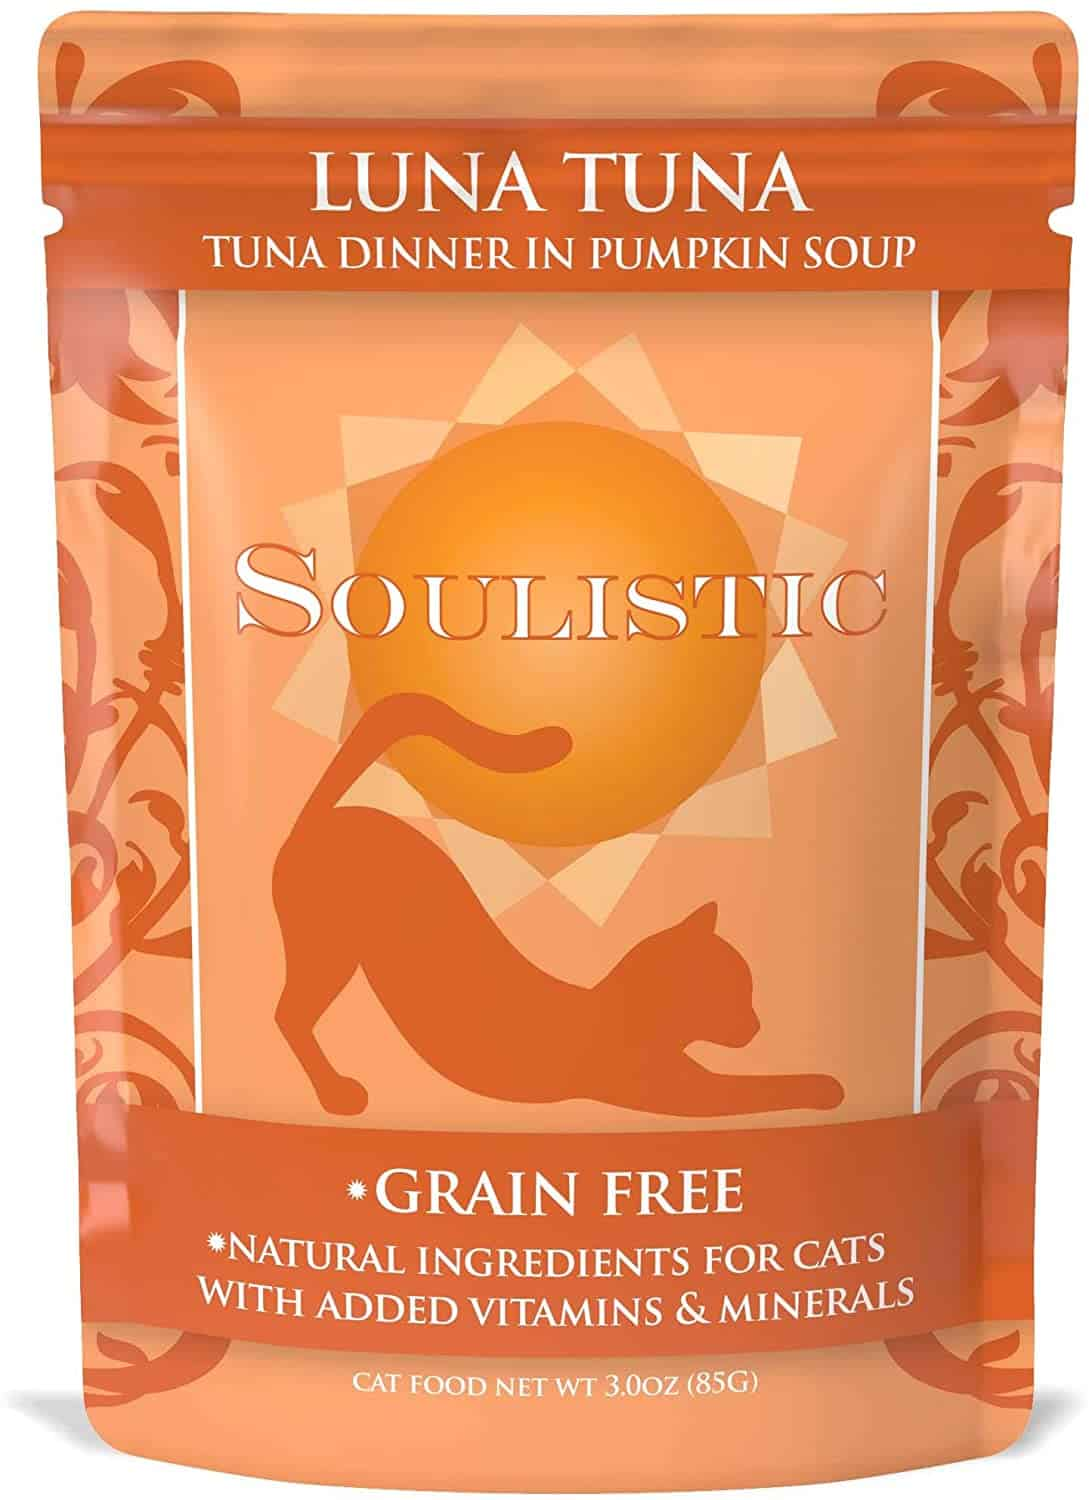 Soulistic Cat Food Review 2021: The Top Choice For Picky Kitties! 4